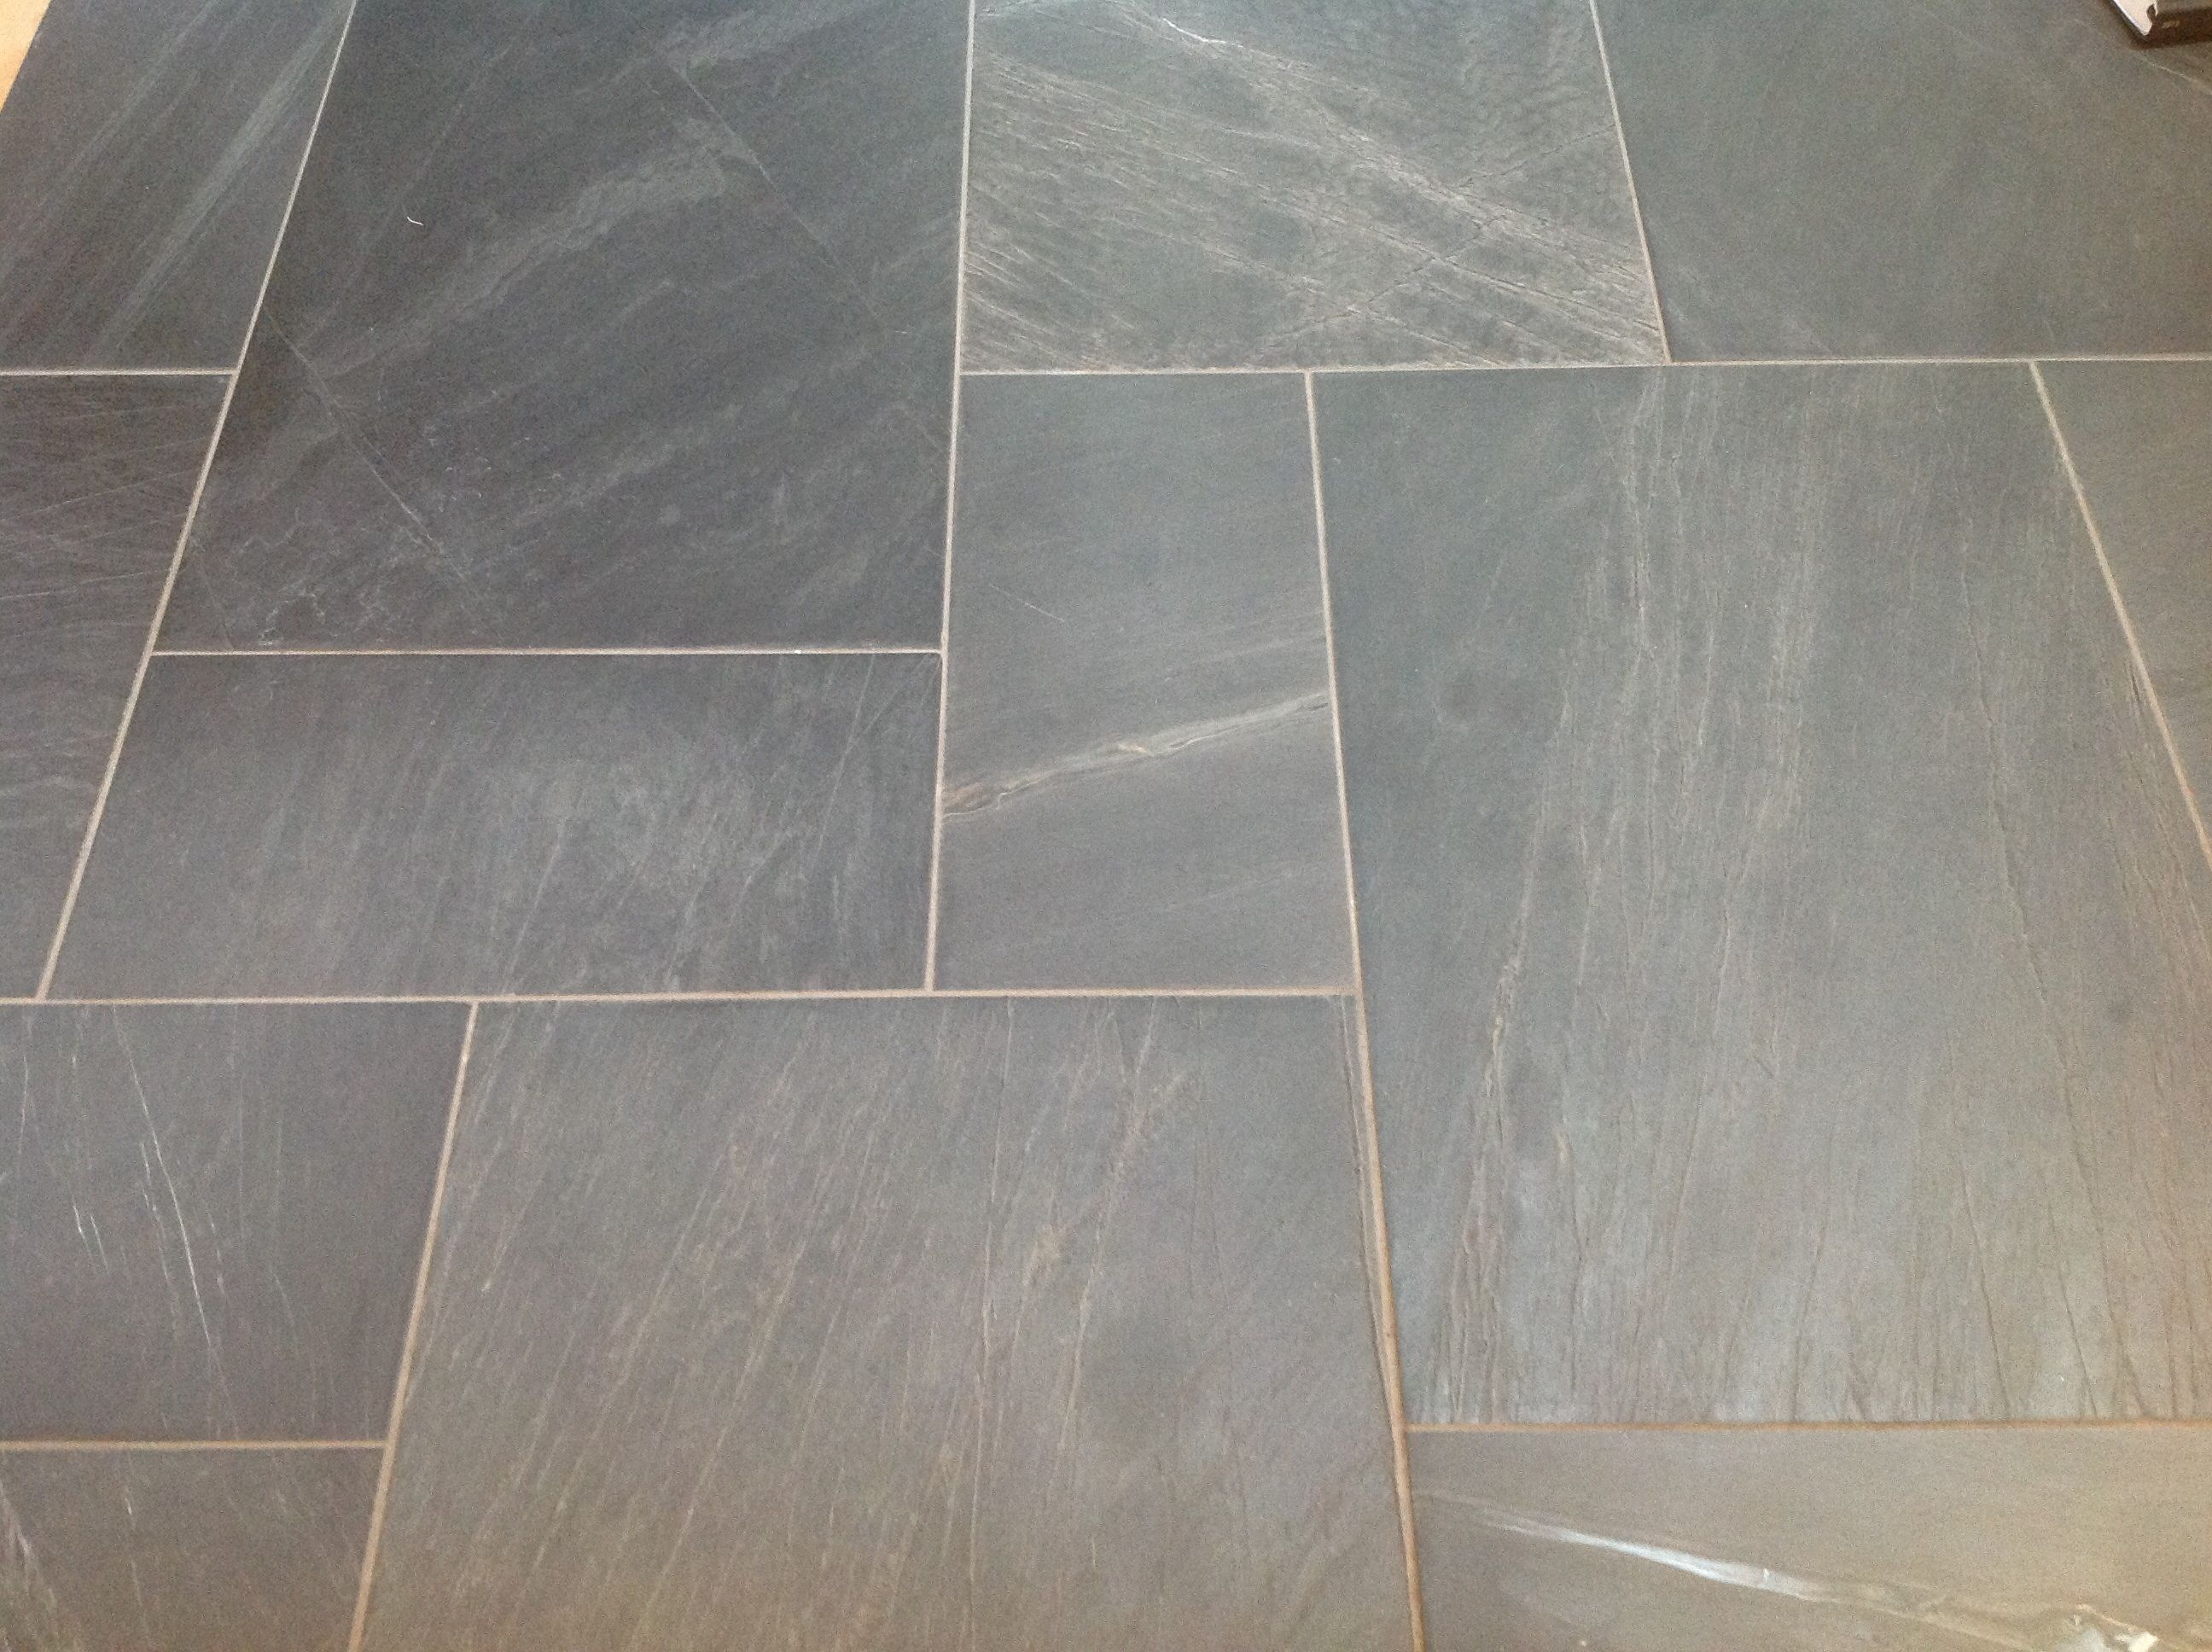 Phyllite tiles honed httpnaturalstoneconsultingslate phyllite tiles honed httpnaturalstoneconsulting dailygadgetfo Image collections